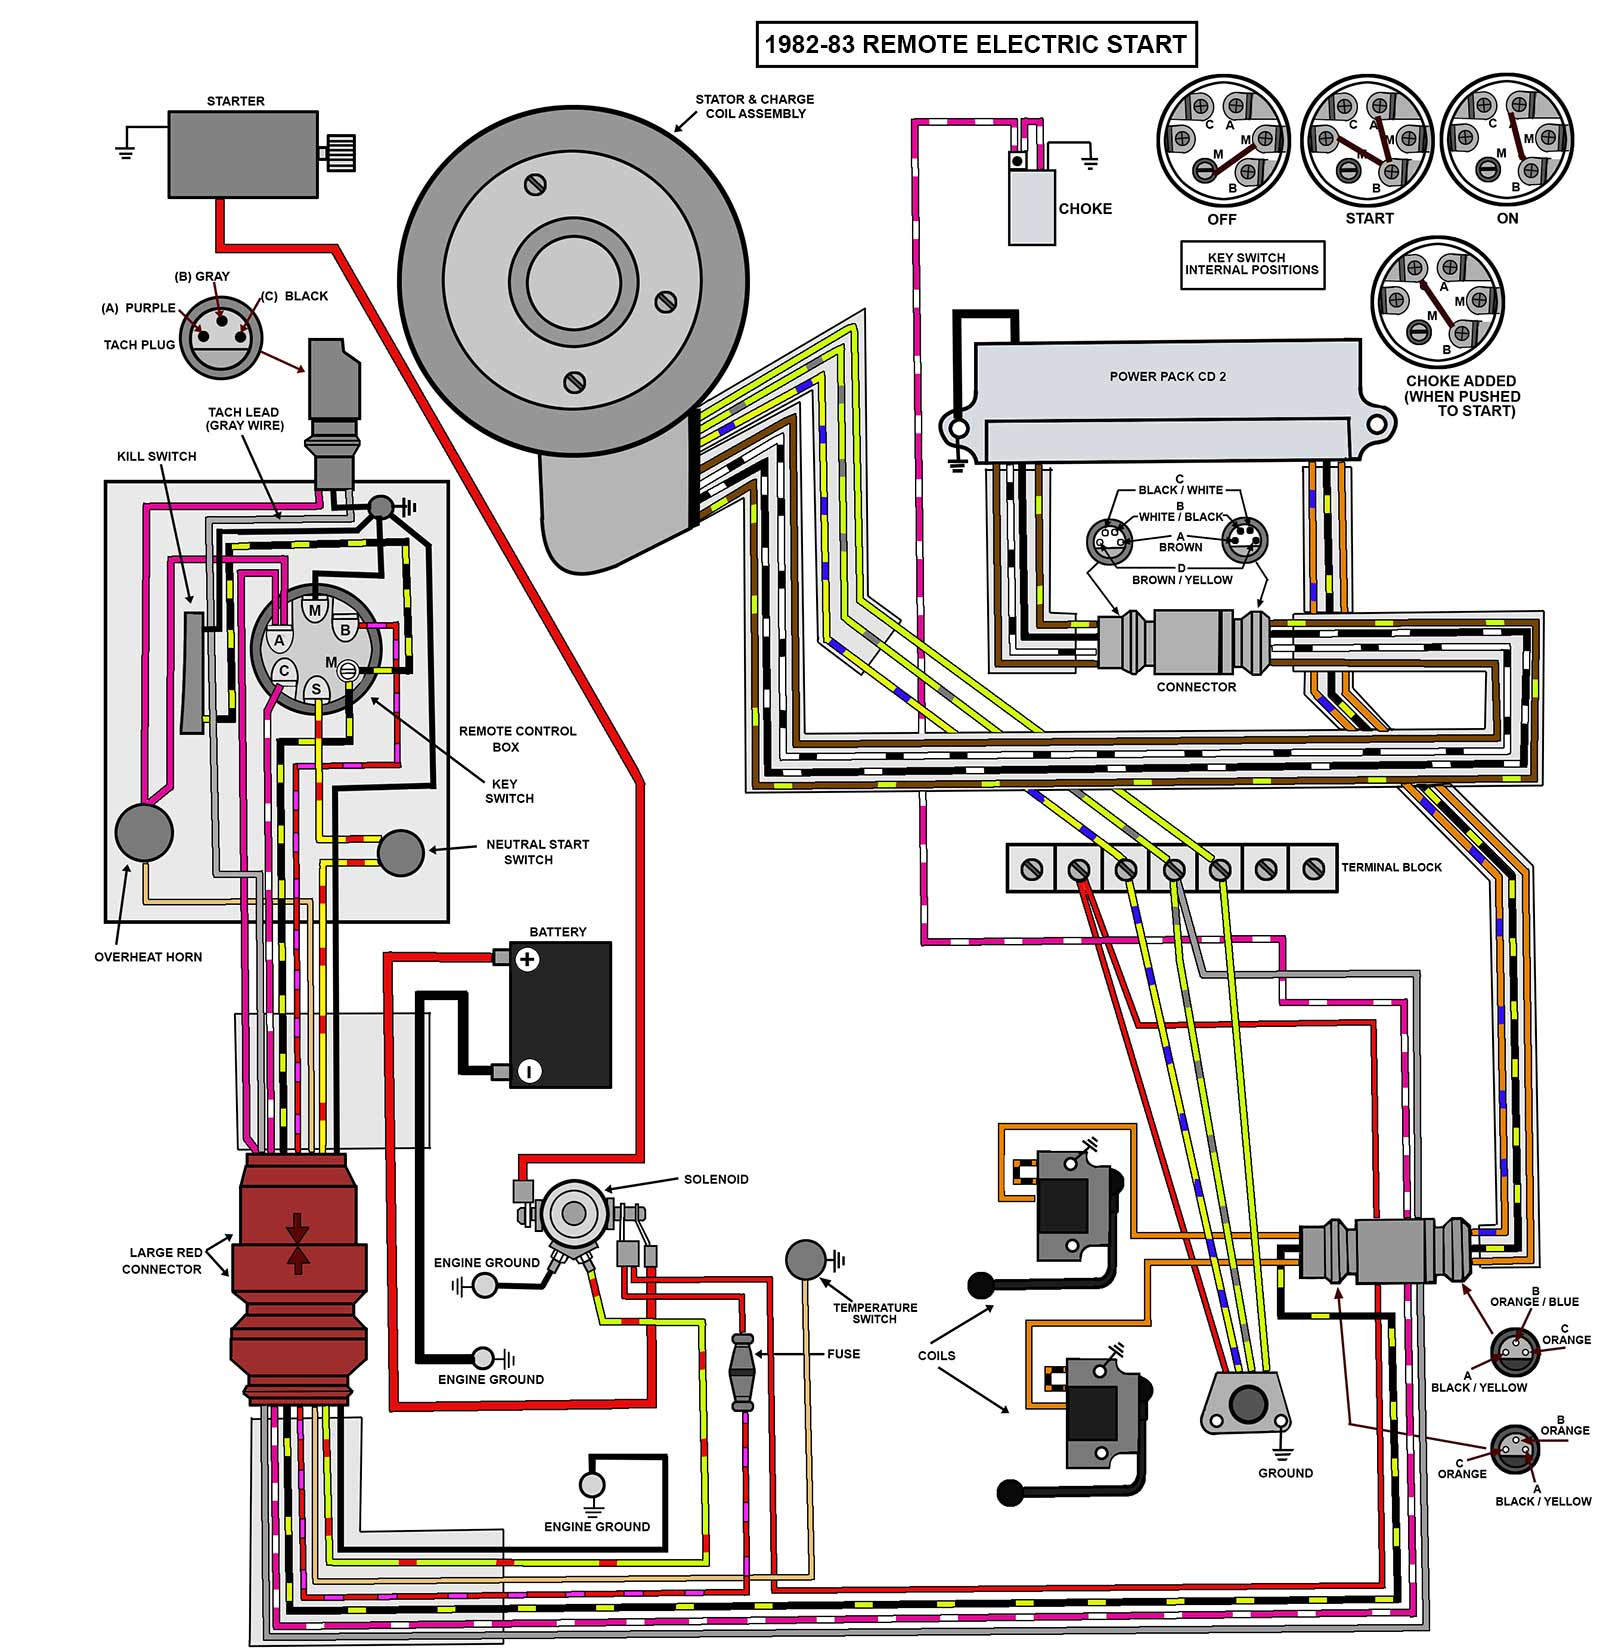 25_35_82 83_elec remote hp wiring diagram wiring harness diagram \u2022 wiring diagrams j Yamaha Outboard Logo at love-stories.co